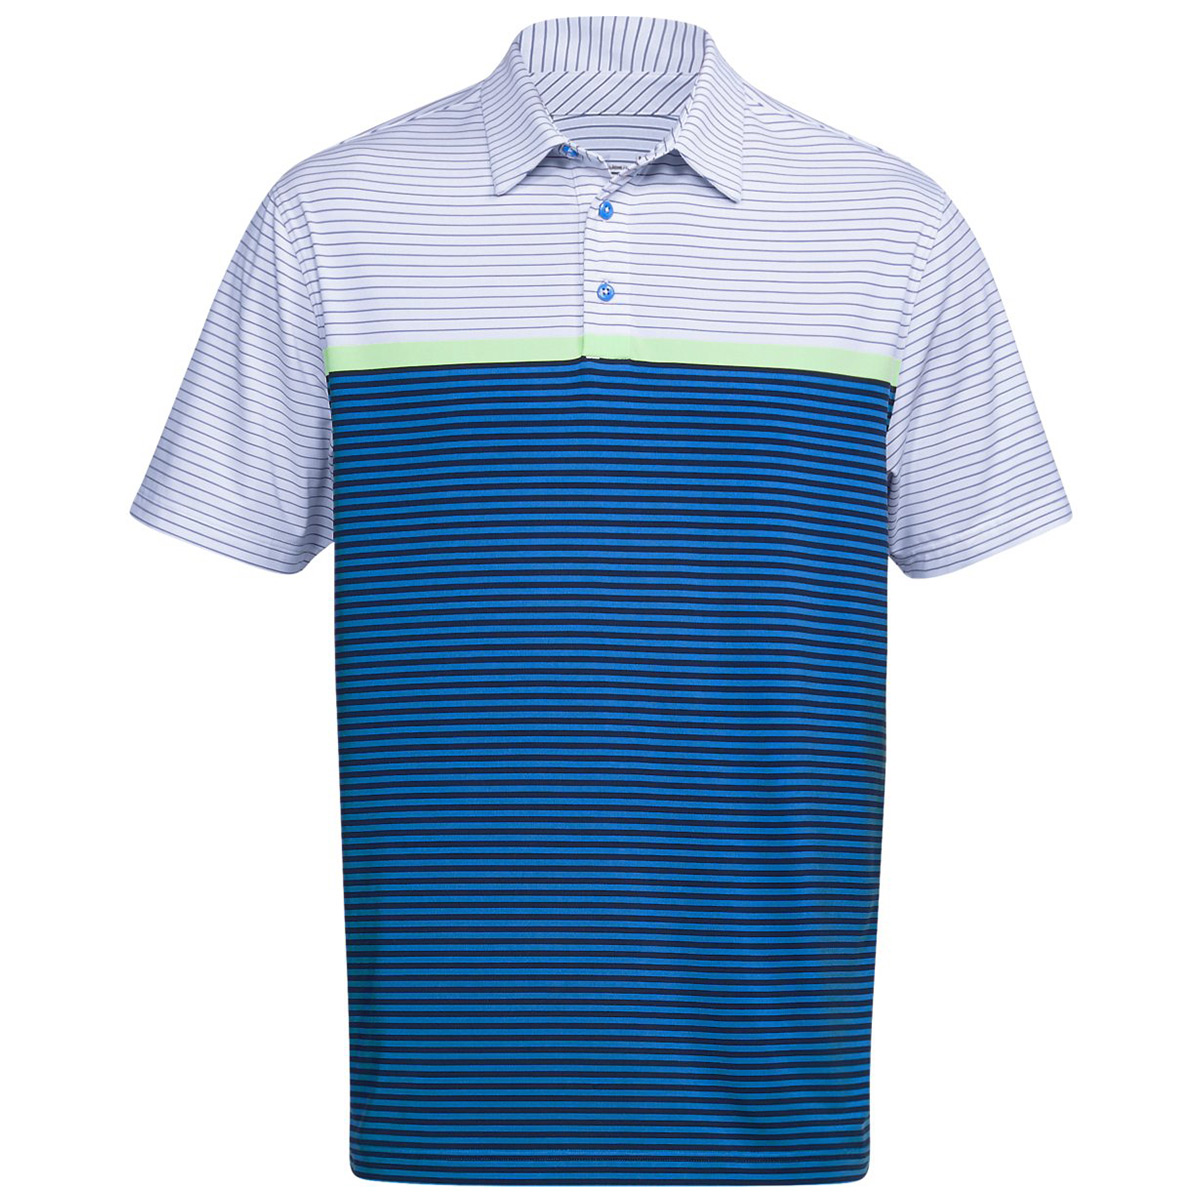 Under-Armour-Mens-Crestable-Playoff-Performance-Golf-Polo-Shirt-50-OFF-RRP thumbnail 37